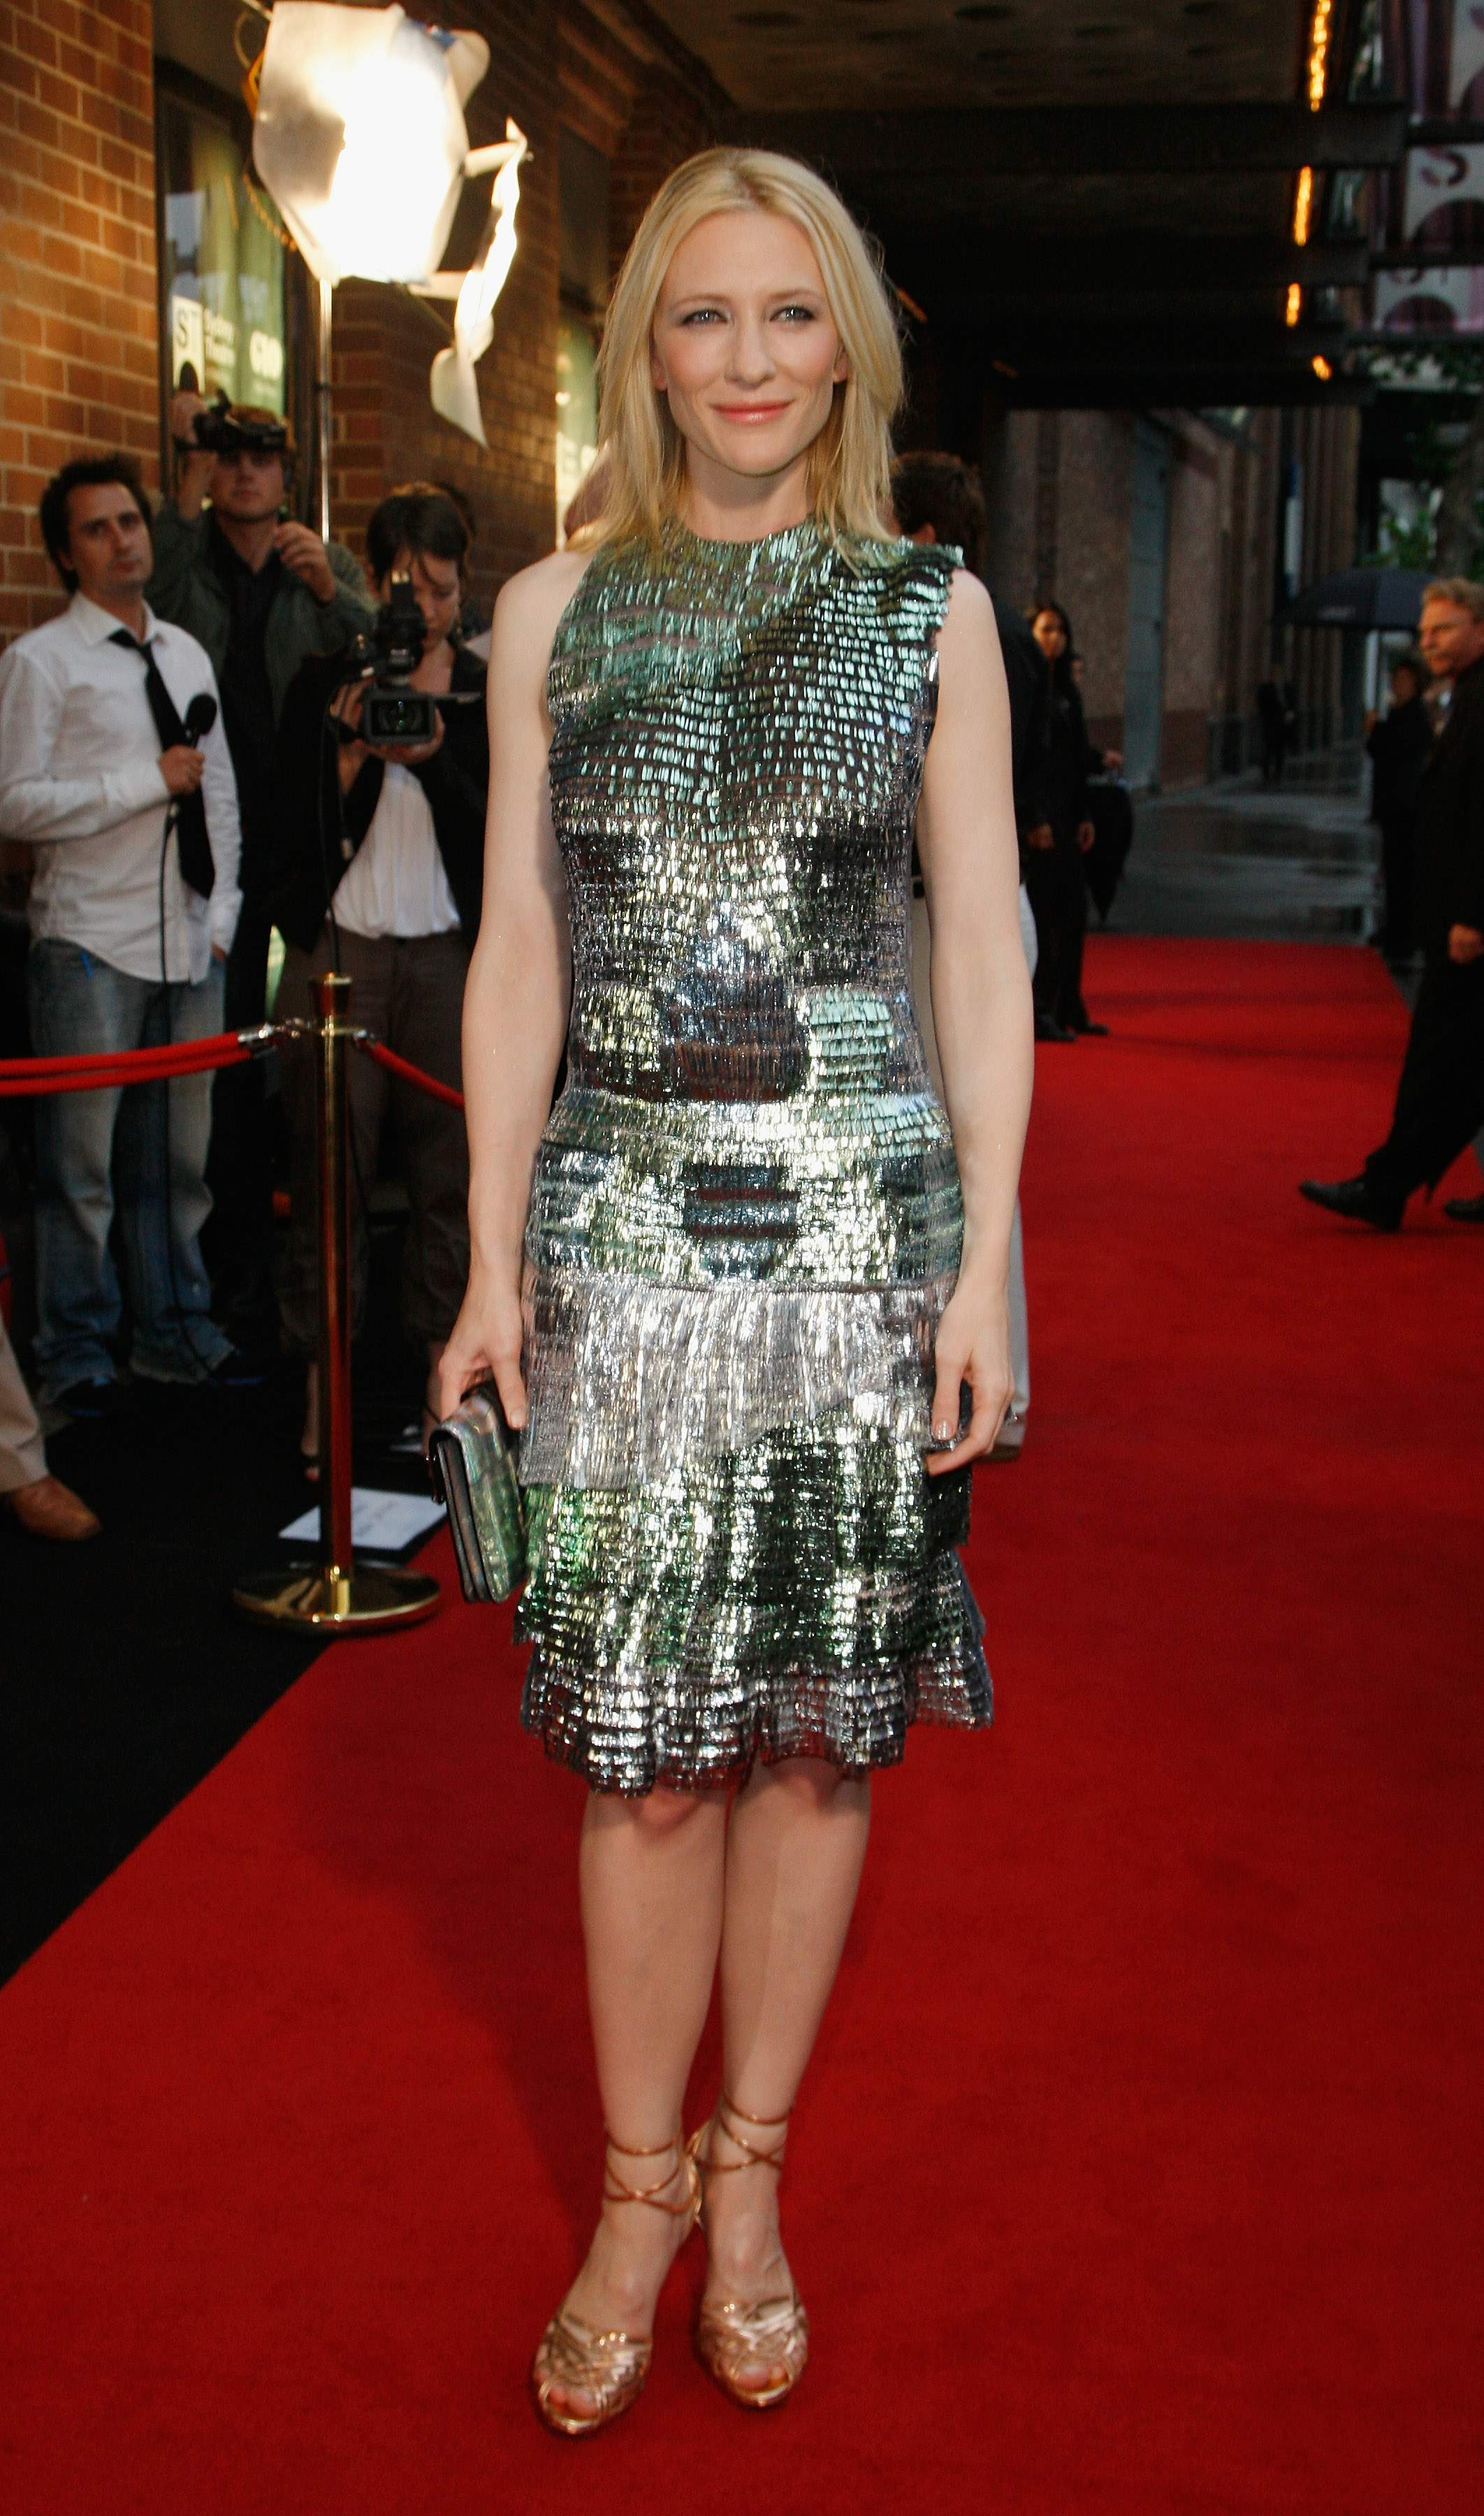 02208_cate-blanchett-the-curious-case-of-benjamin-button012_122_716lo.jpg